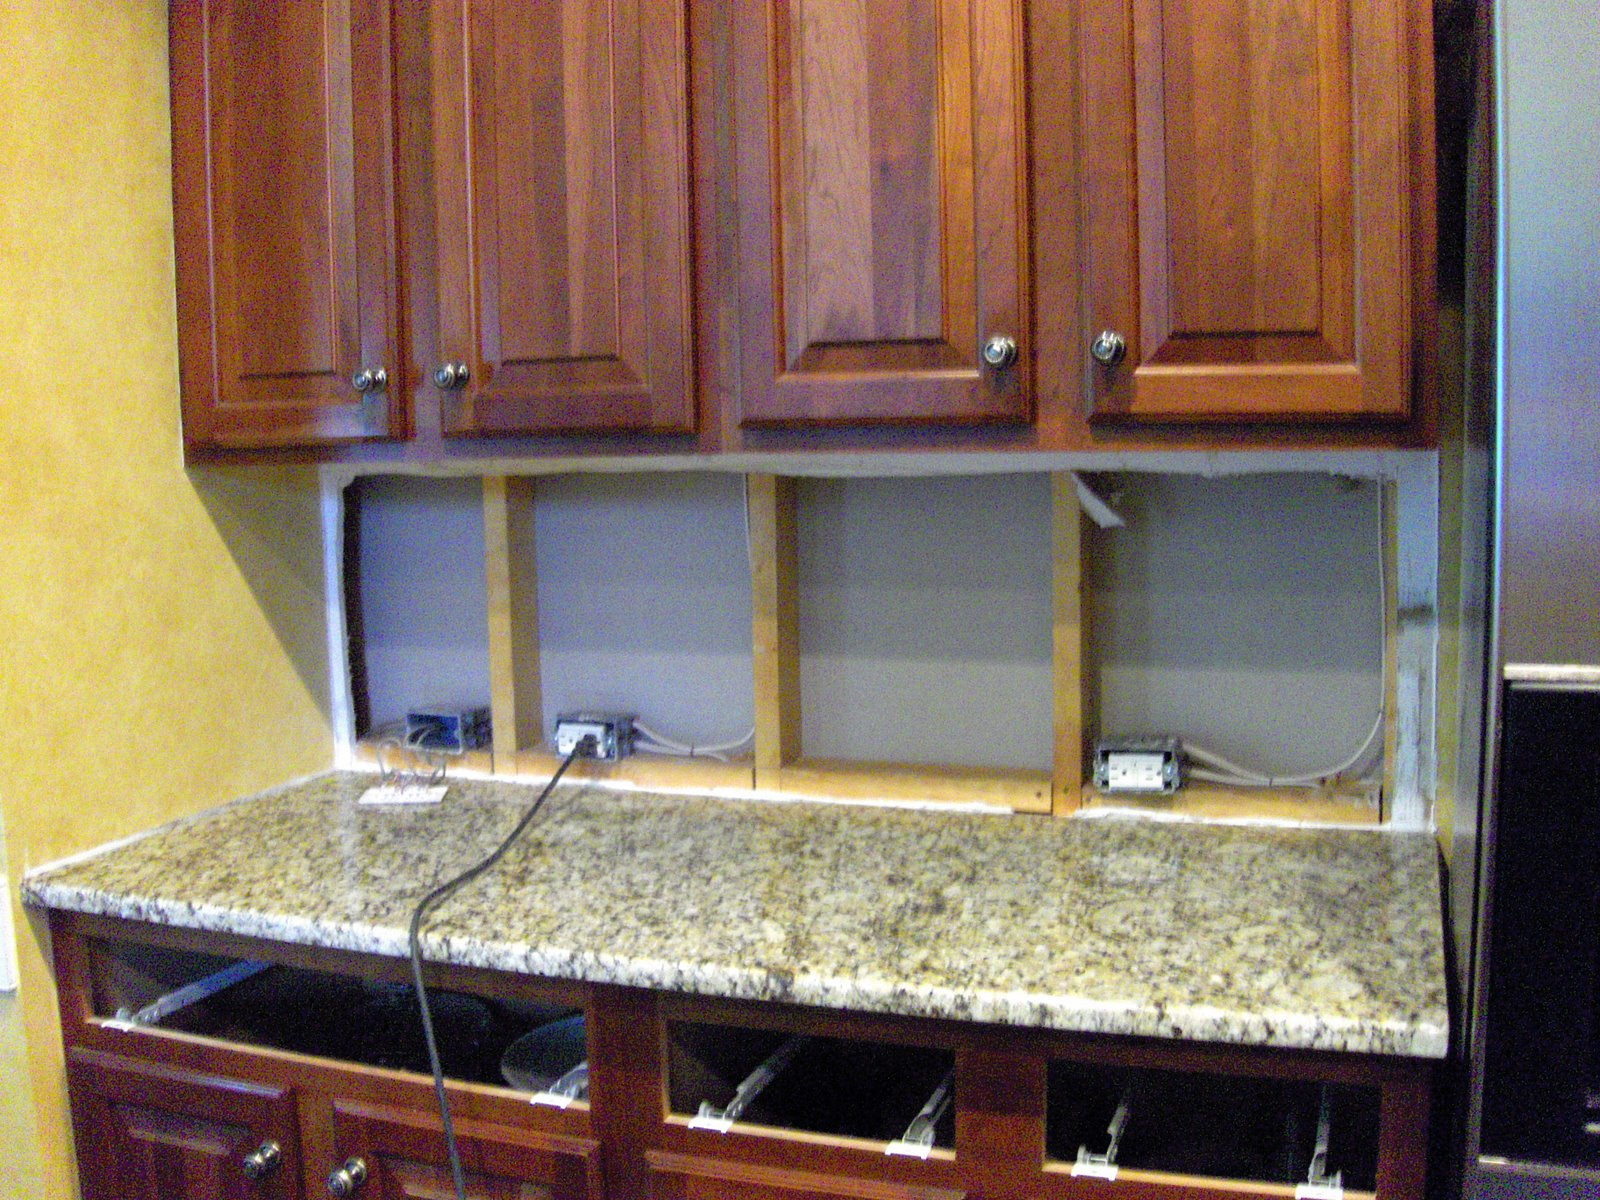 Kitchen Counter Lighting Faucet Pull Out Sprayer Under Casual Cottage